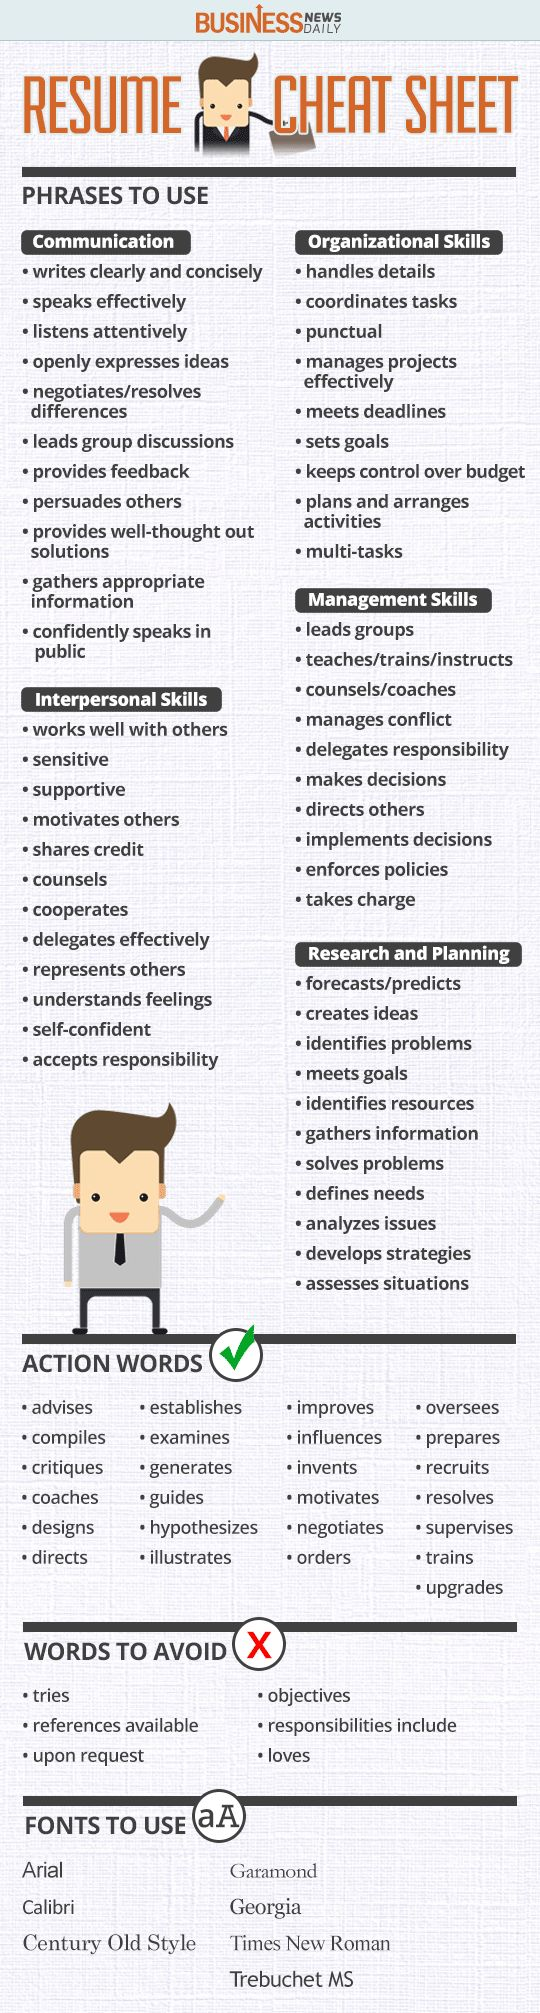 Opposenewapstandardsus  Scenic  Ideas About Resume On Pinterest  Cv Format Resume Cv And  With Engaging Resume Cheat Sheet Infographic Andrews Almost Done With A Complete Unit On Employment Which With Charming Good Job Resume Also Resume Writers Houston In Addition Qa Resume Sample And Food And Beverage Resume As Well As Customer Service Sales Resume Additionally How To Get Resume Template On Word From Pinterestcom With Opposenewapstandardsus  Engaging  Ideas About Resume On Pinterest  Cv Format Resume Cv And  With Charming Resume Cheat Sheet Infographic Andrews Almost Done With A Complete Unit On Employment Which And Scenic Good Job Resume Also Resume Writers Houston In Addition Qa Resume Sample From Pinterestcom